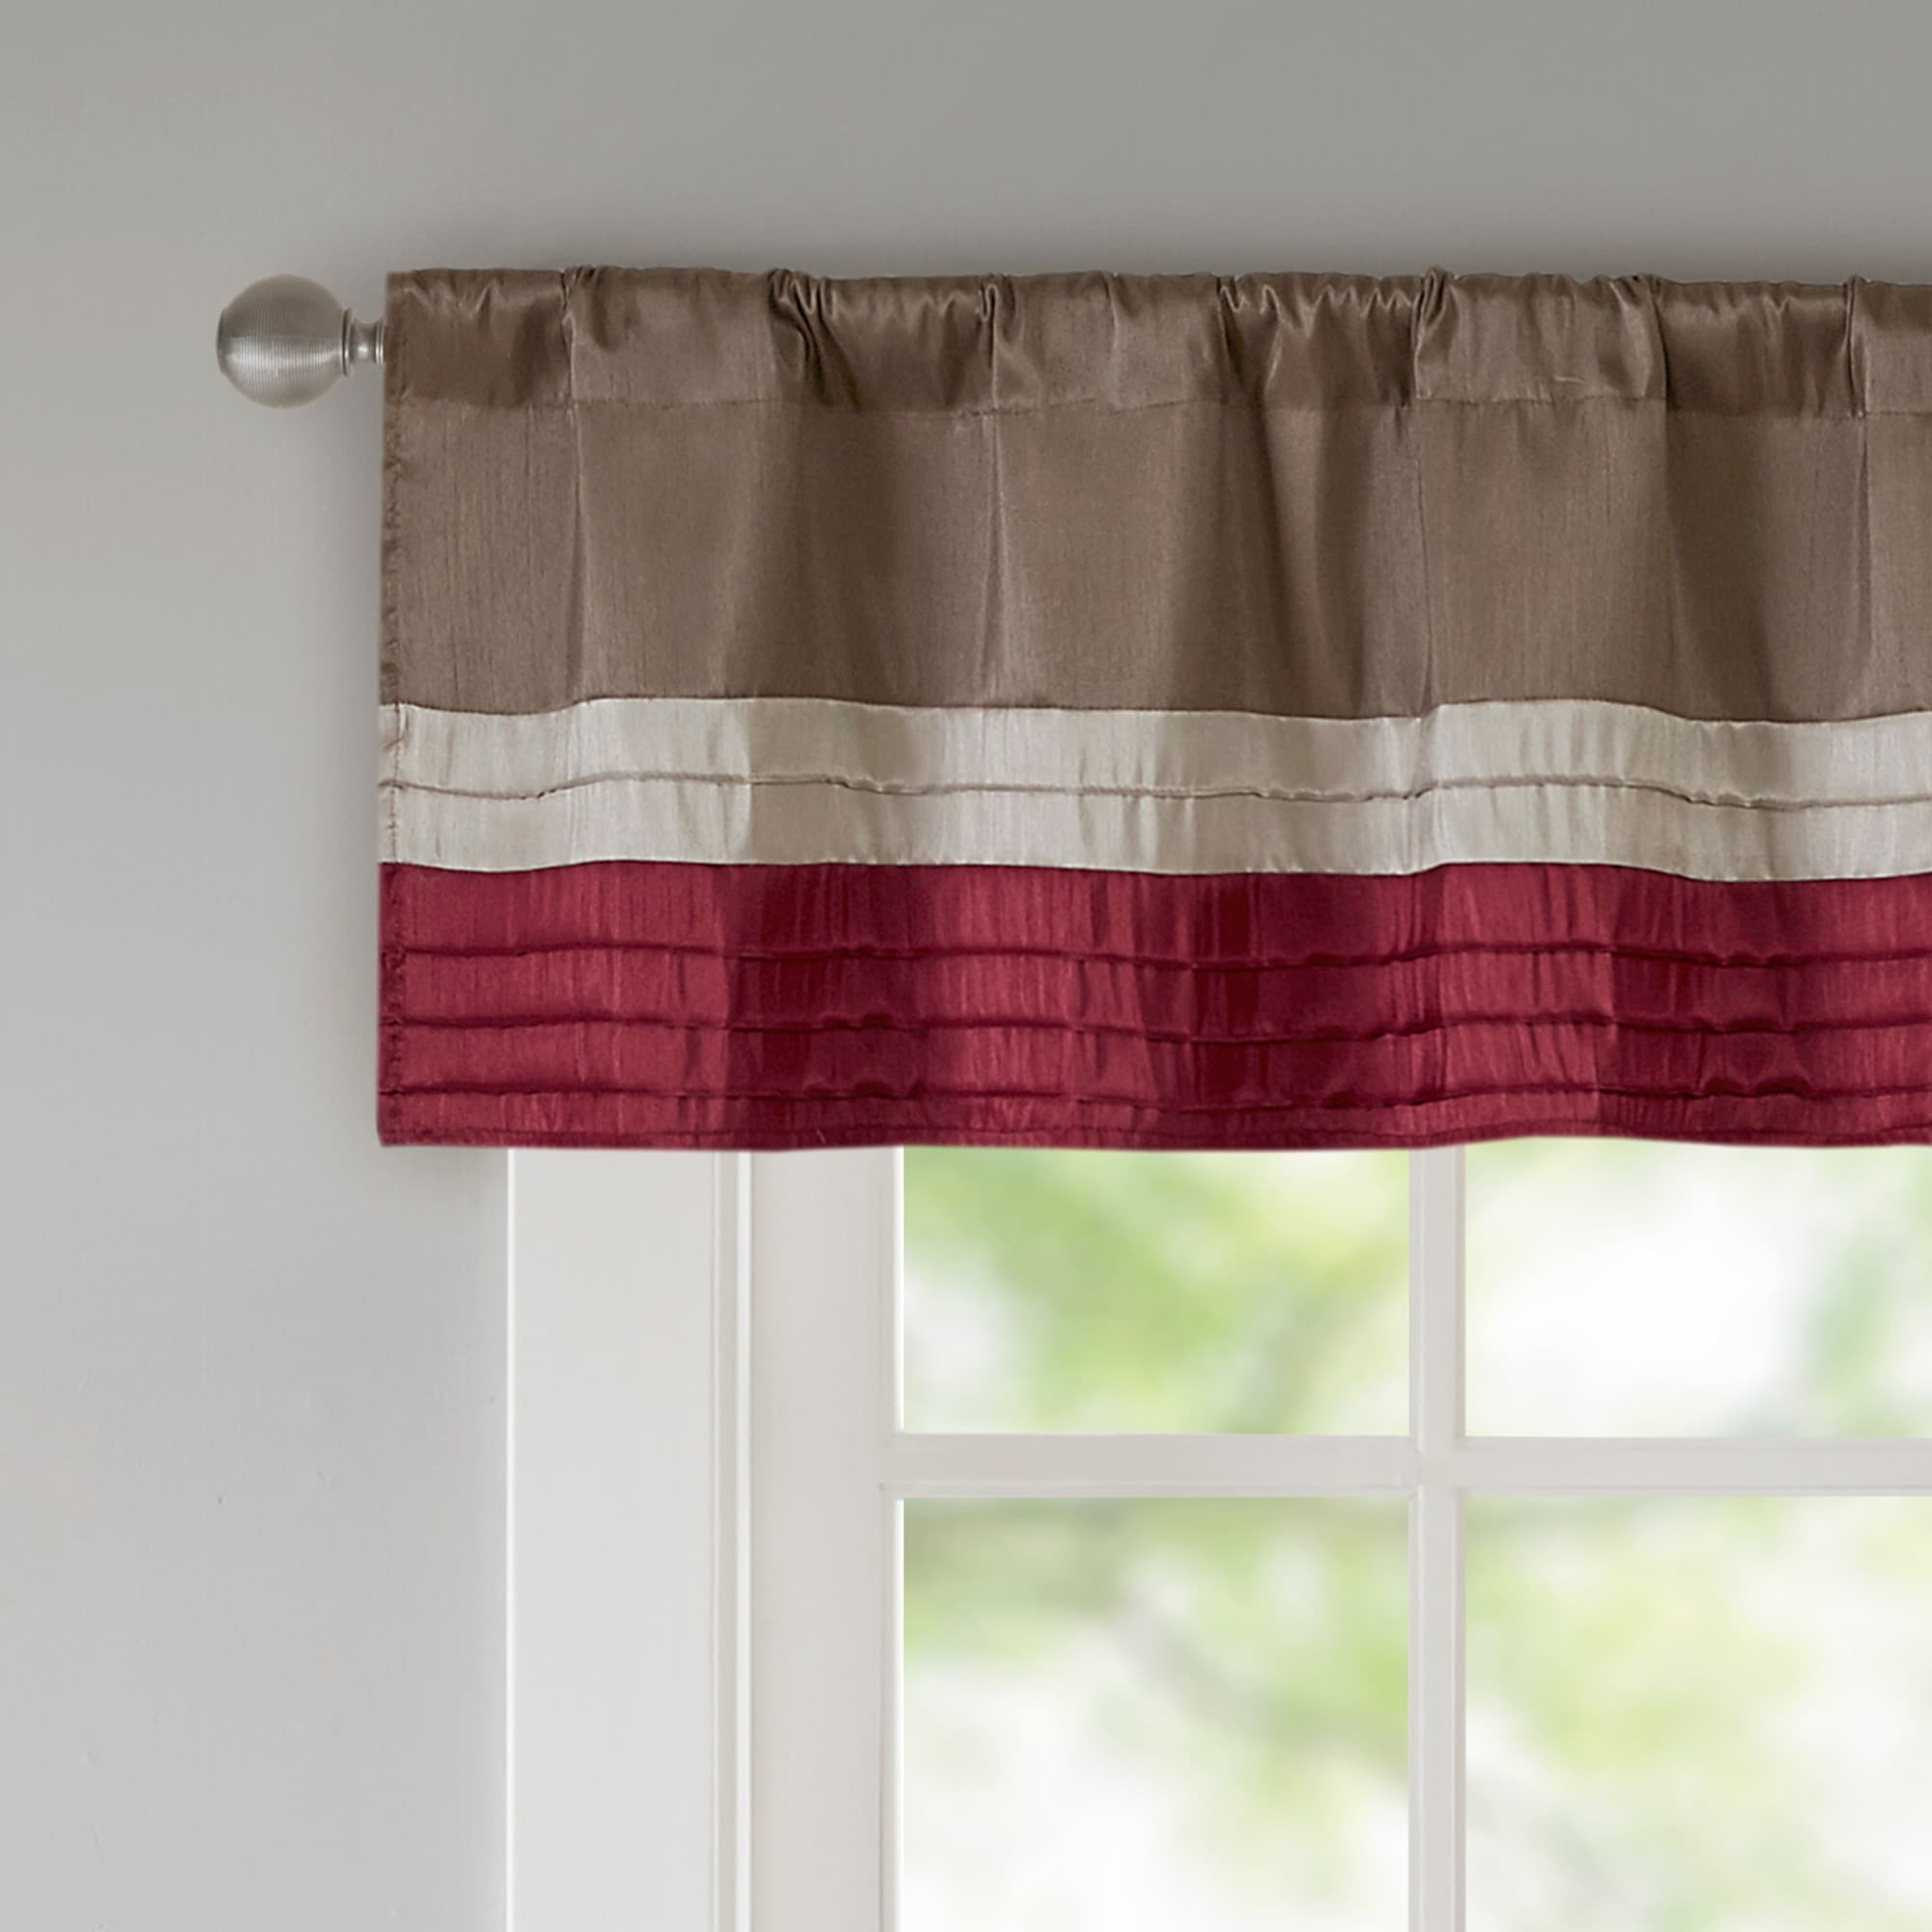 piece embroidered valances pdx valance treatments window wayfair lined reviews and kitchen coffee tier set talk elements